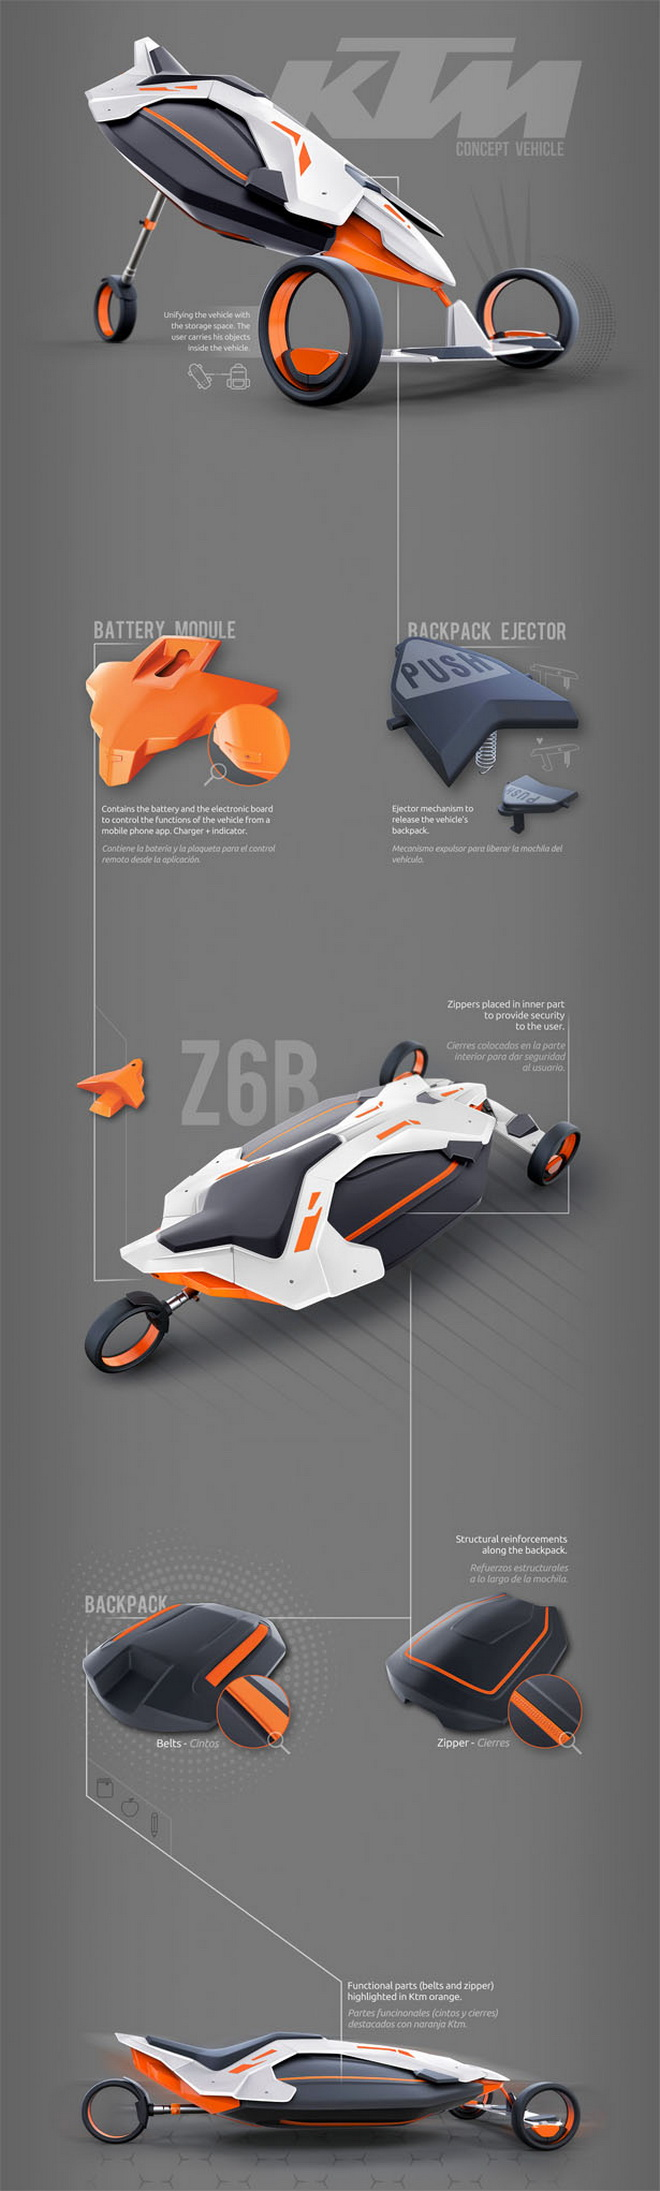 ktm-unipersonal-concept-vehicle-by-manuel-frontini2